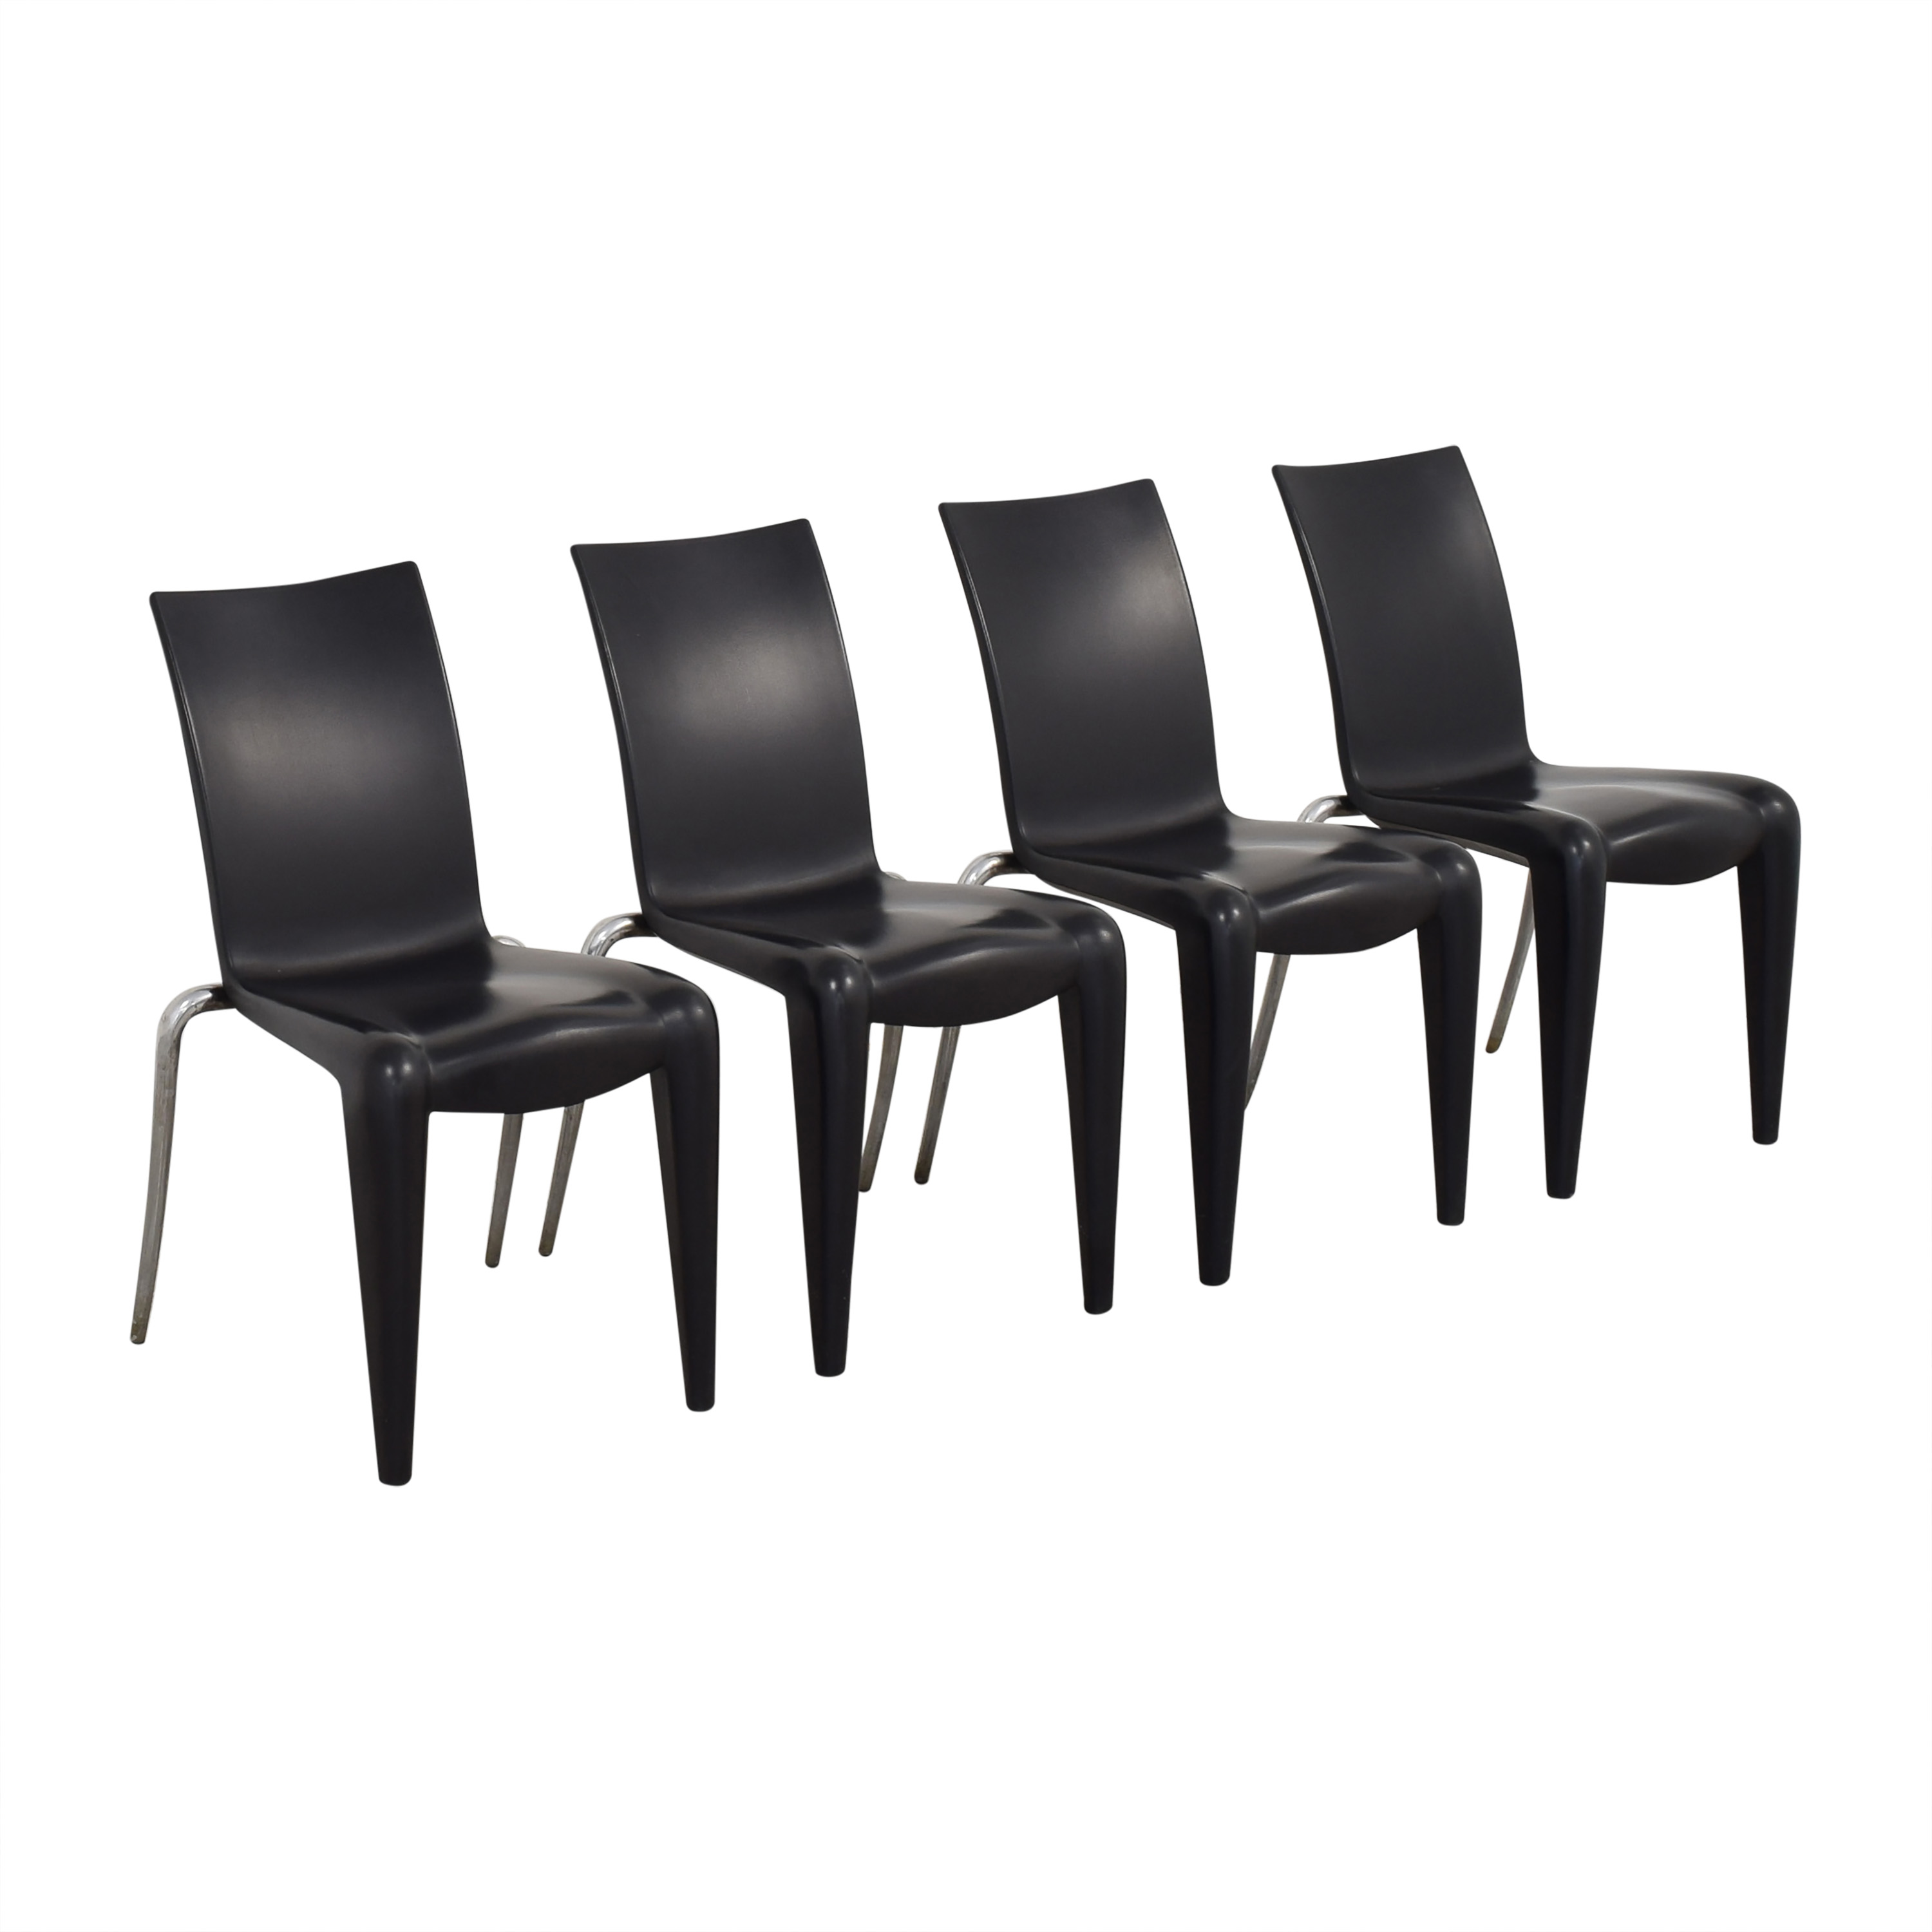 Vitra Vitra Louis 20 Dining Chairs by Phillipe Starck for sale